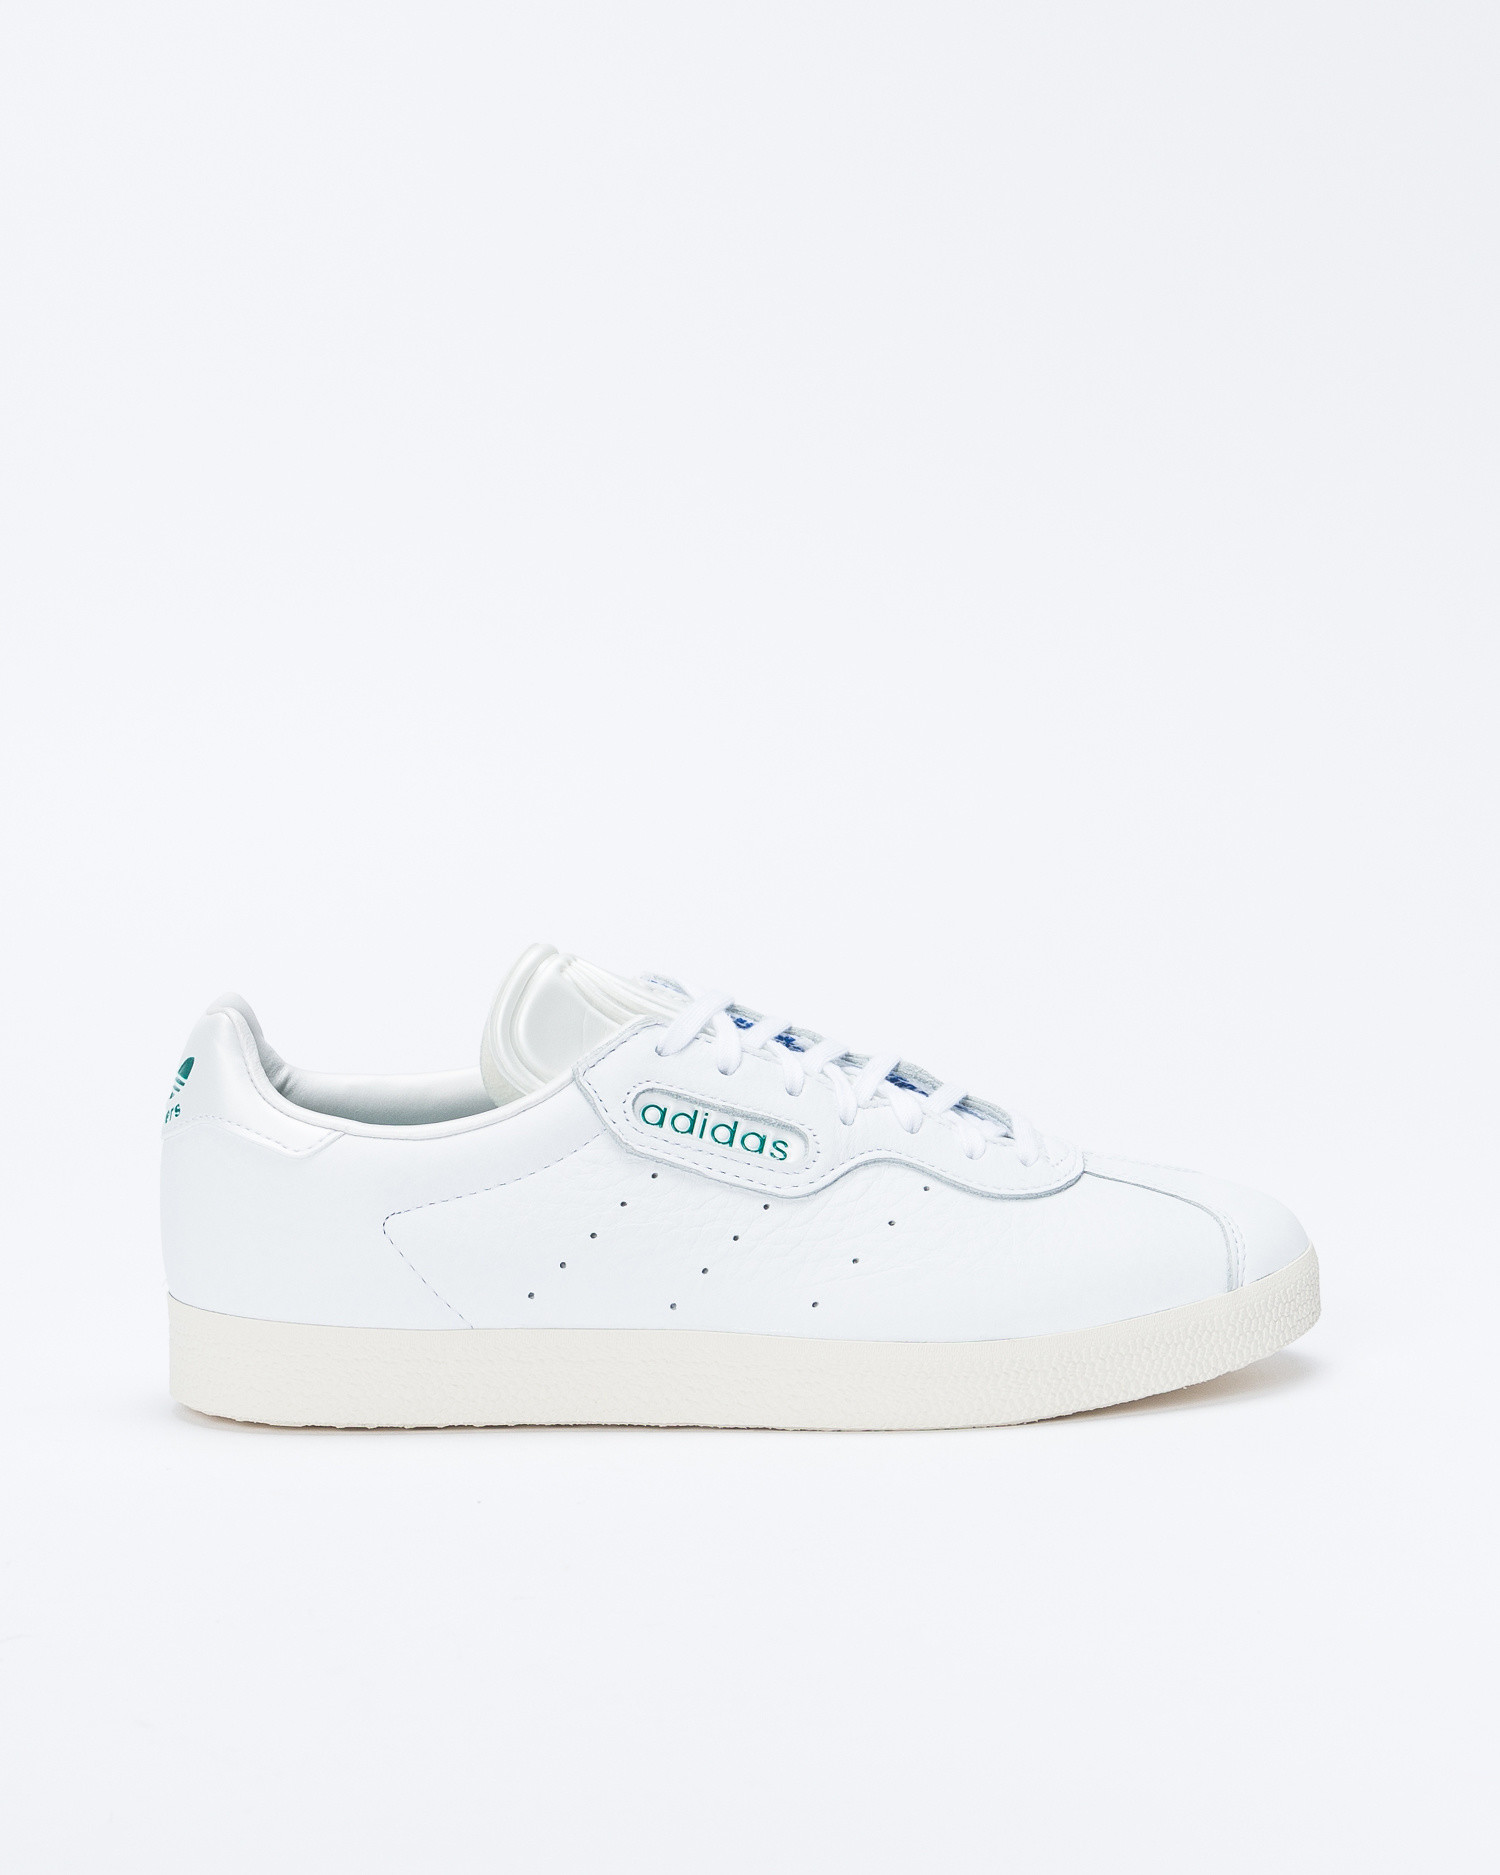 adidas x Alltimers Gazelle Cloud White/Chalk White